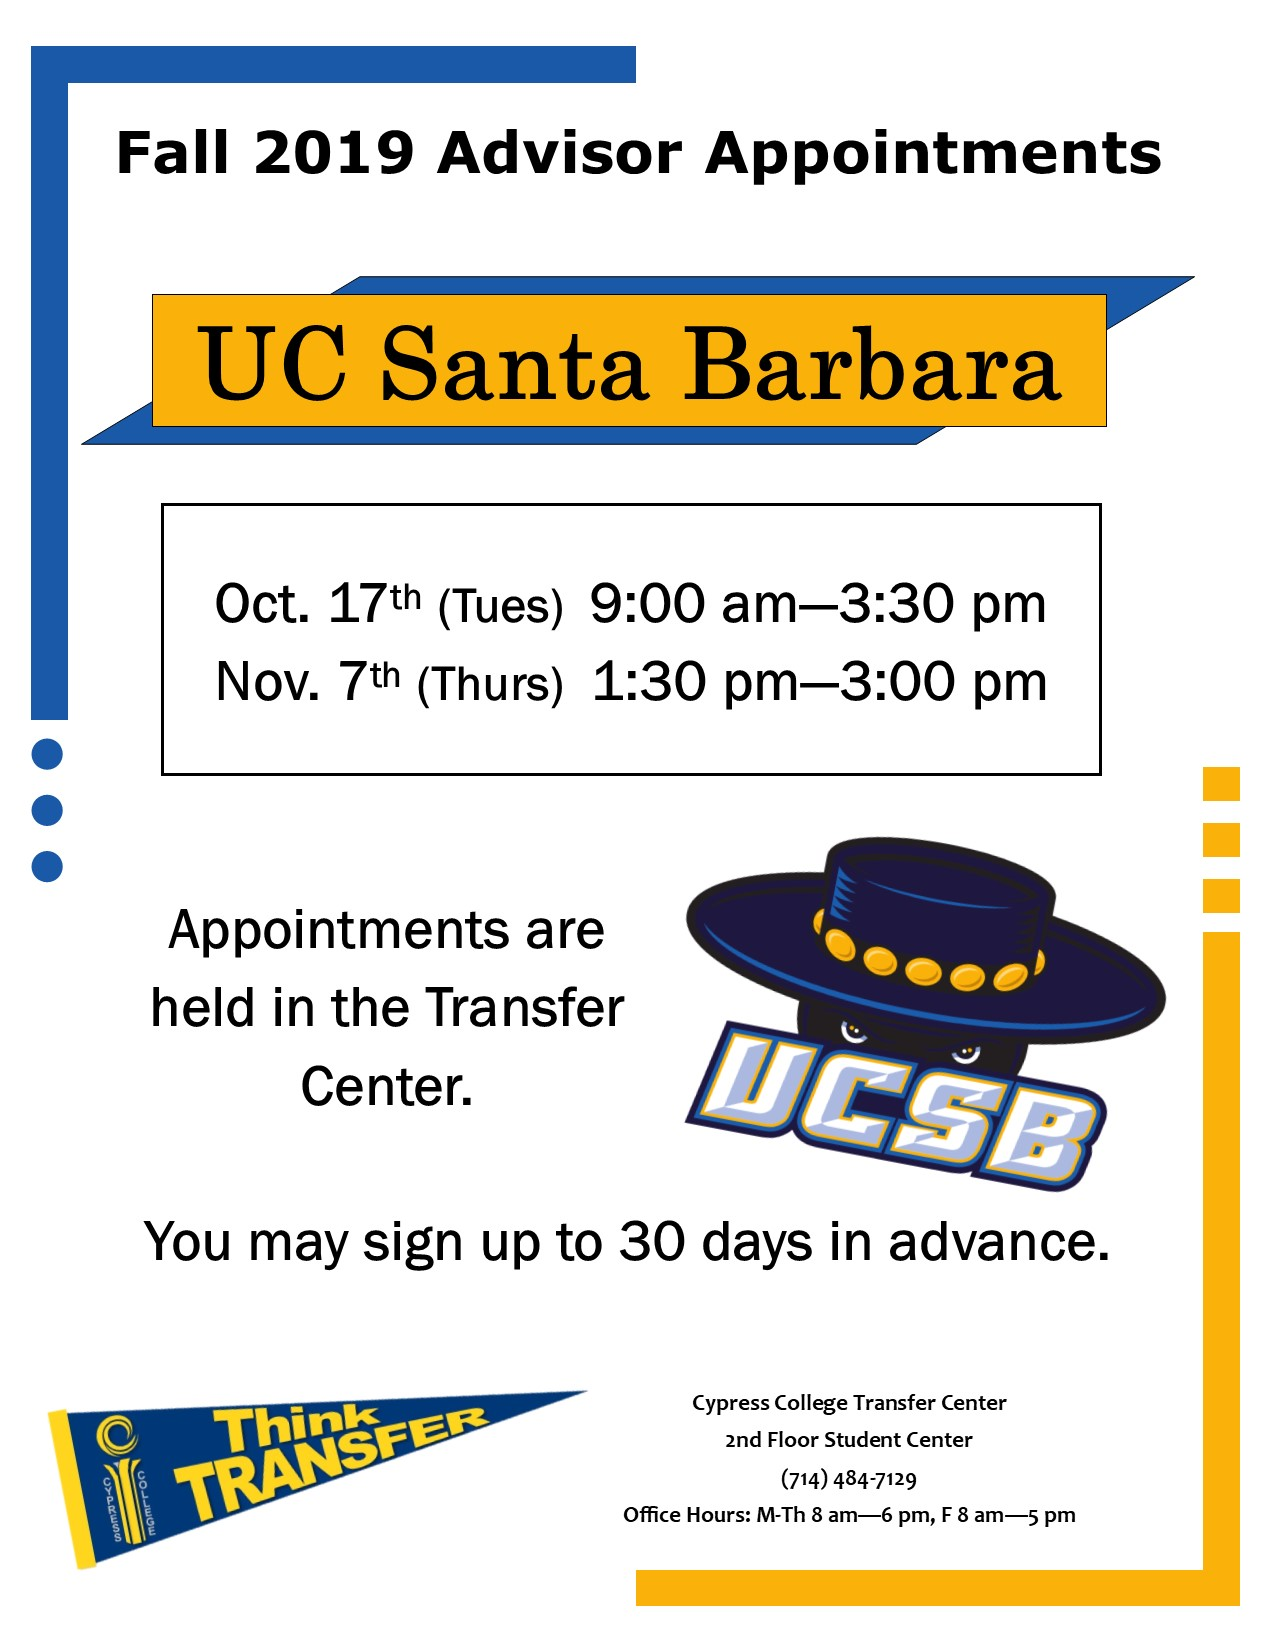 2019 UC Santa Barbara advisor appointments dates and times